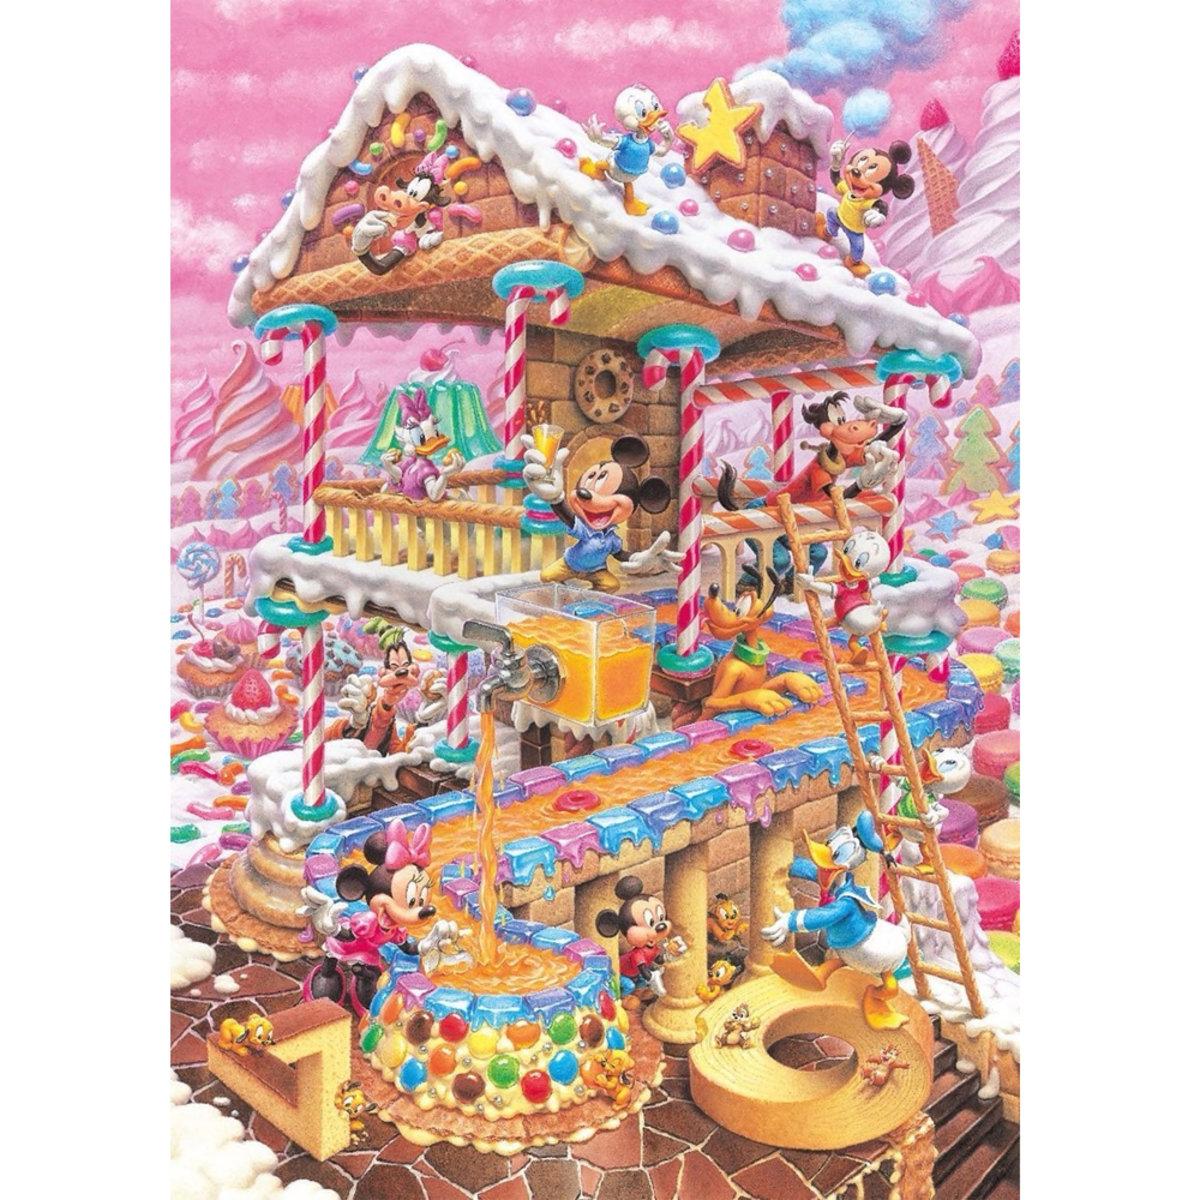 DPG-266-574 266 pieces puzzle Mickey and Minnie Mouse Funny Home (4905823855744) [Licensed by Disney]